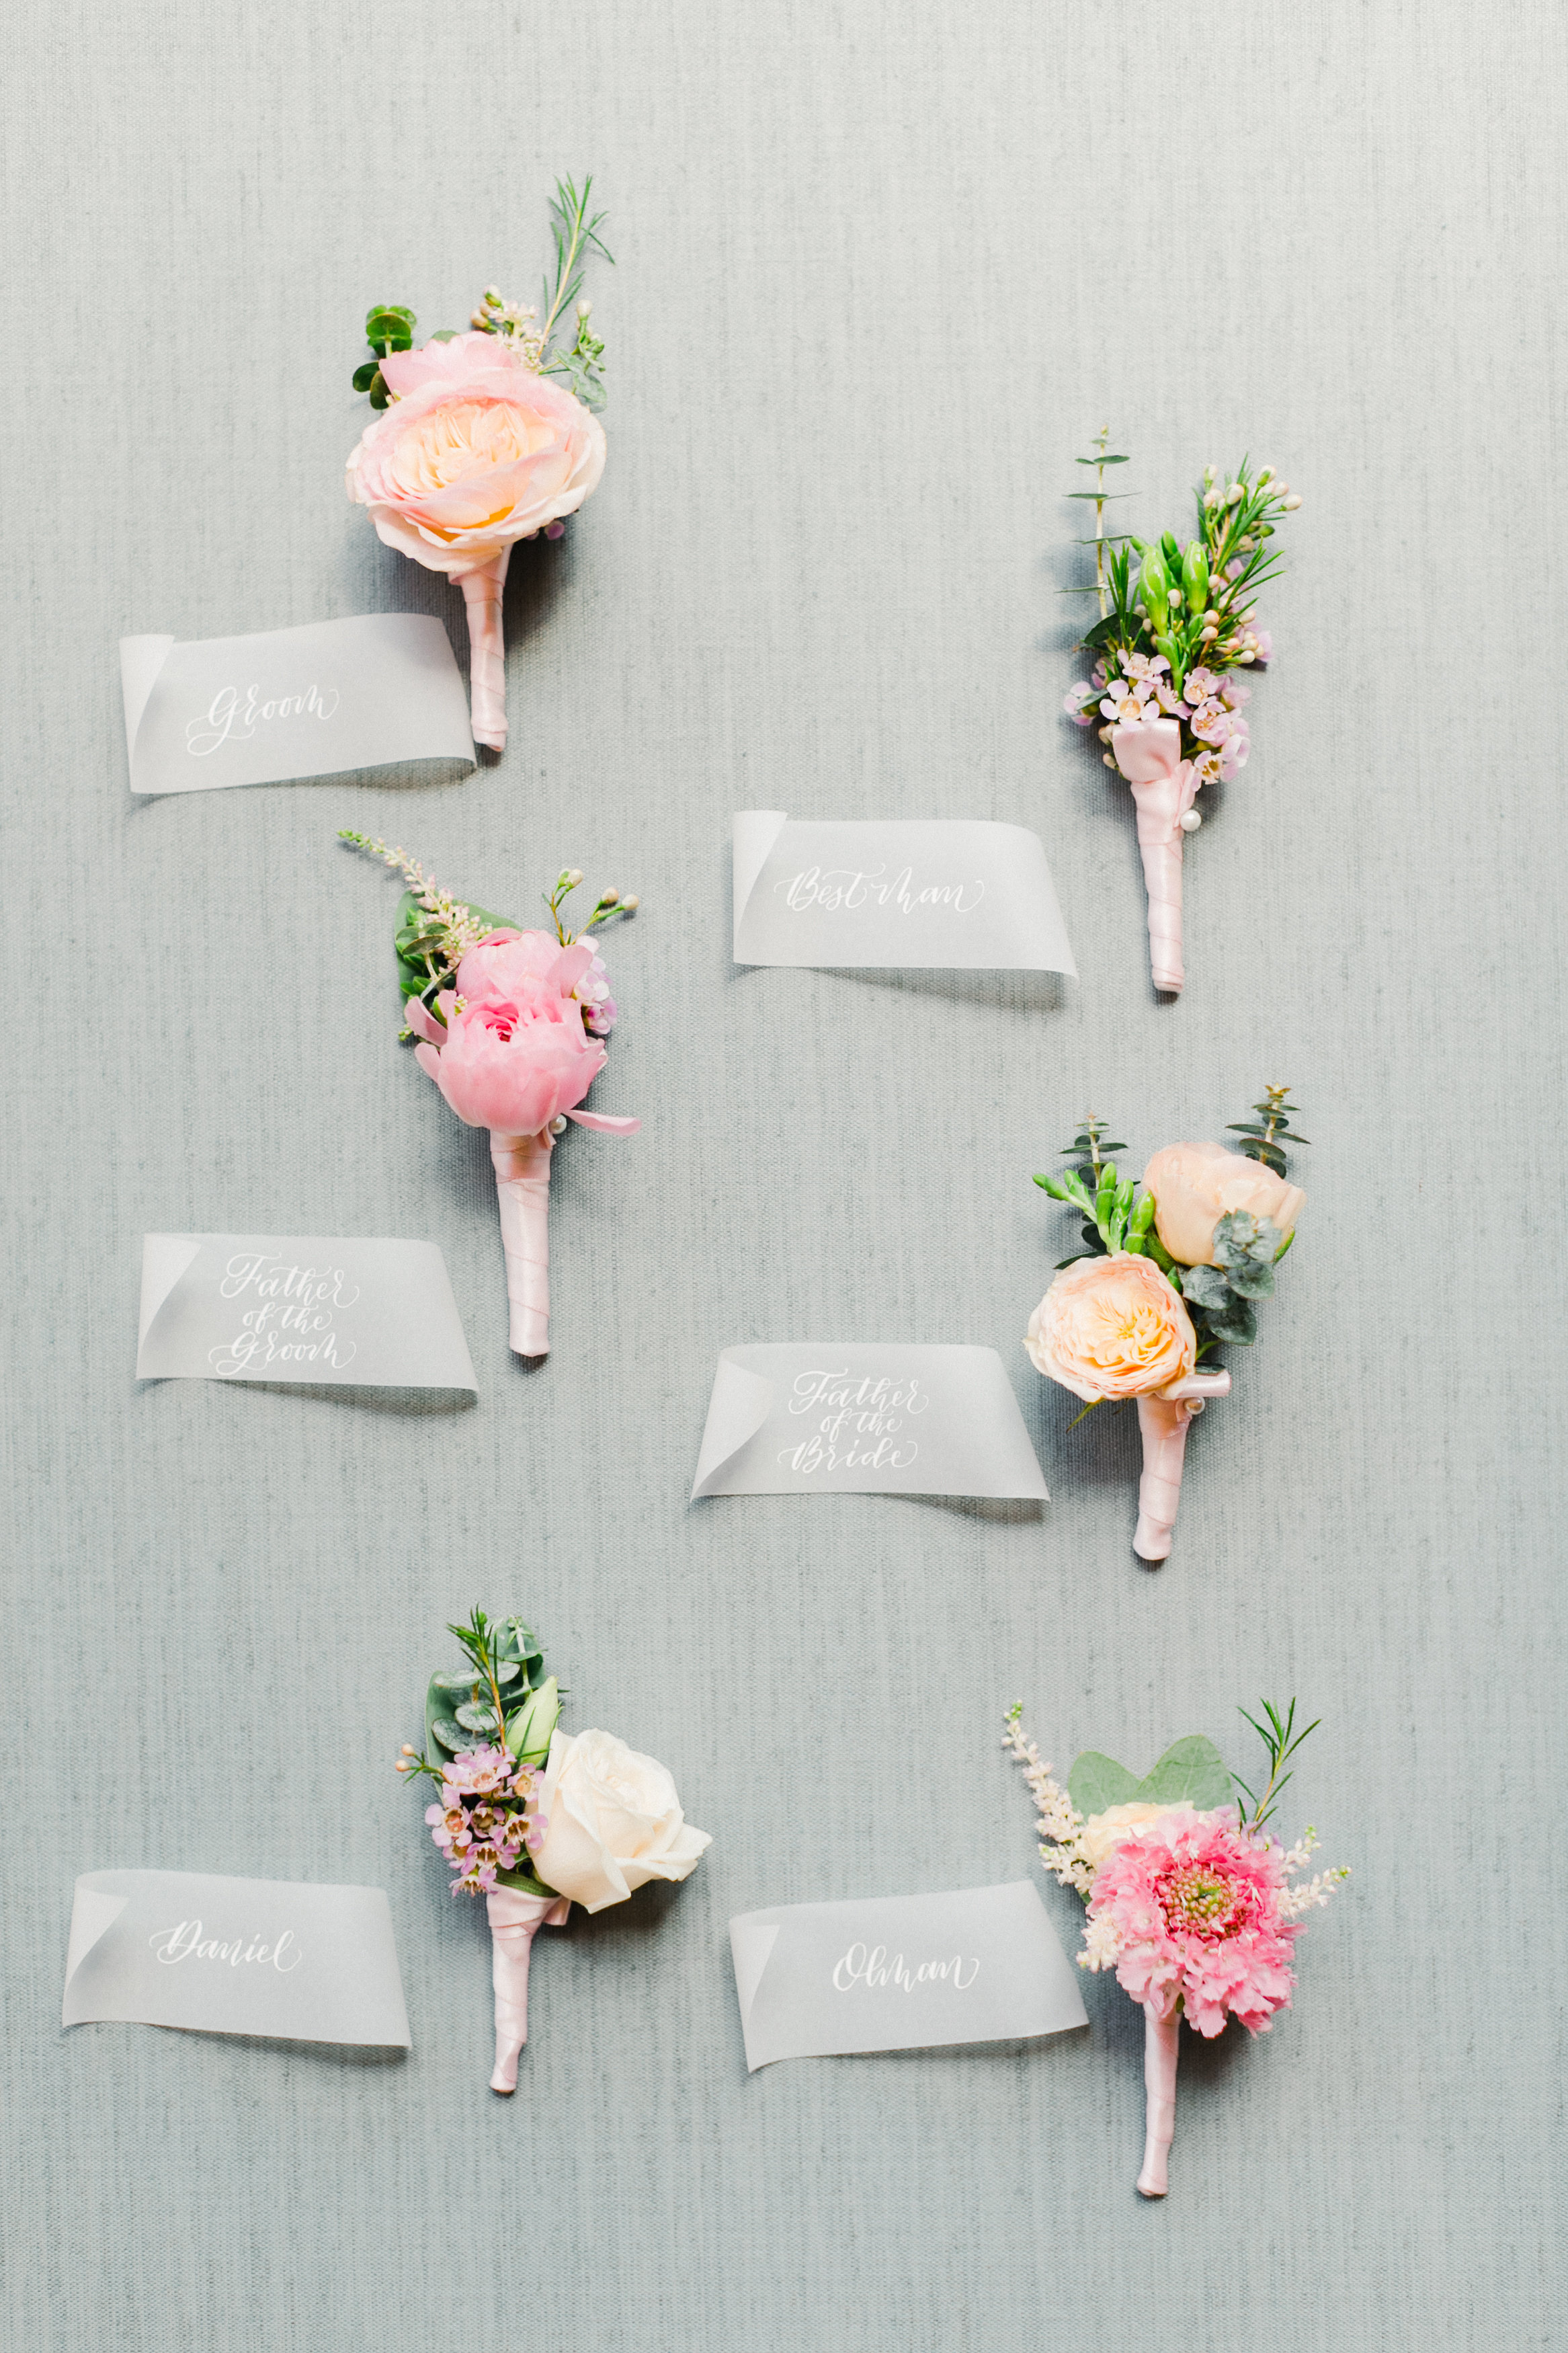 Calligraphy Place Cards and Escort Cards